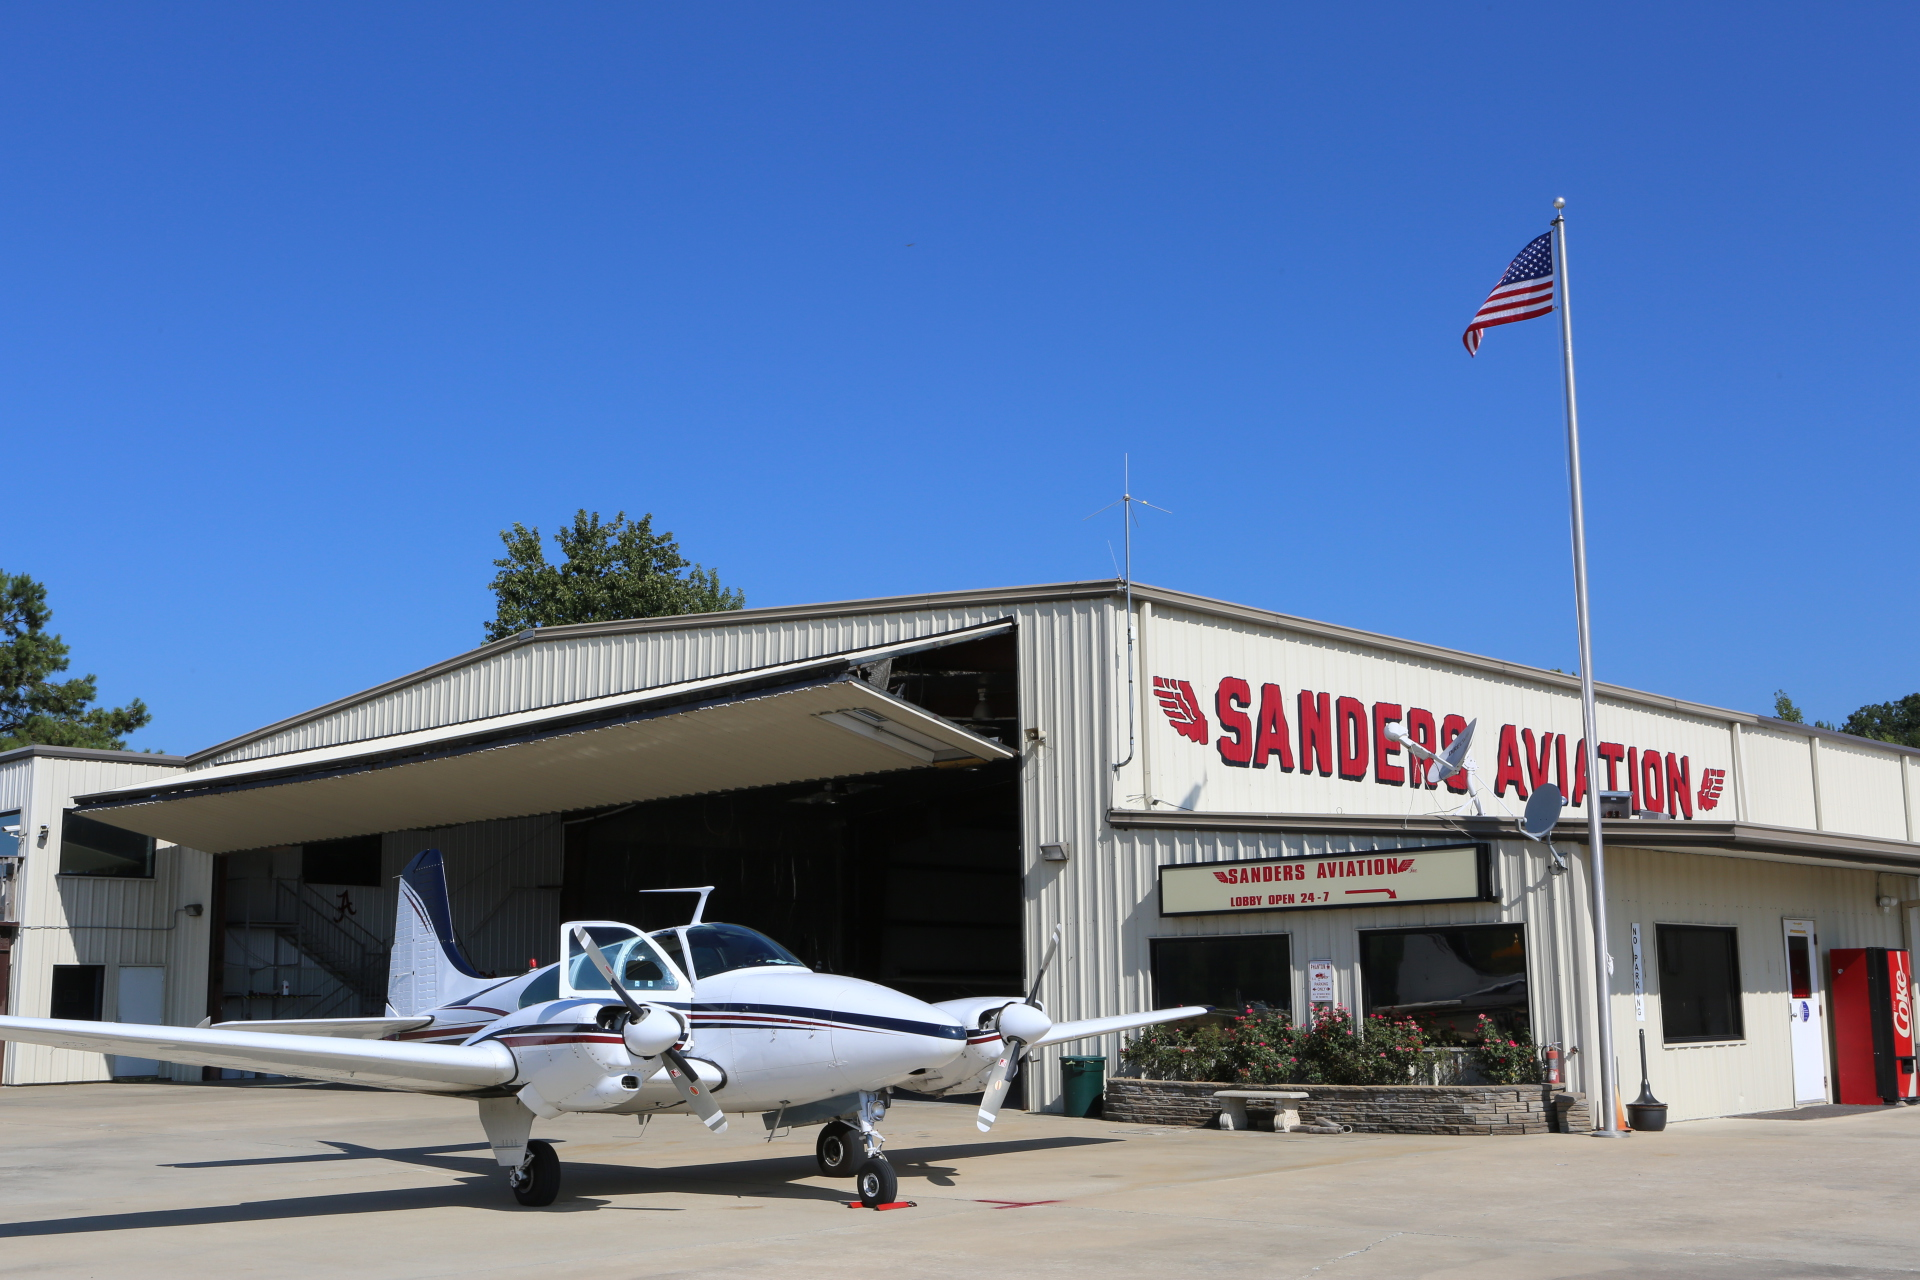 Sanders Aviation FBO